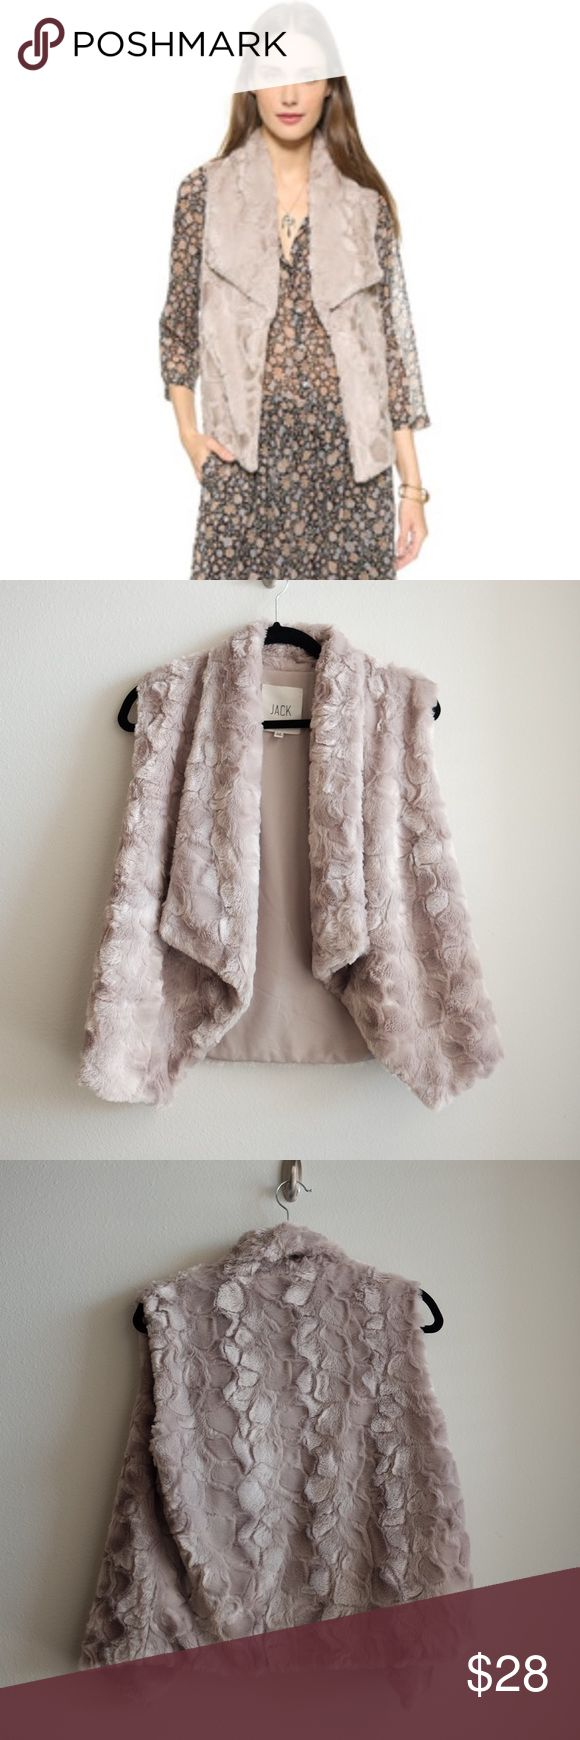 """Jack by BB Dakota Electra Faux Fur Vest Jack by BB Dakota Electra Faux Fur Vest Size M Length: 23"""". Super soft and comfortable. Not real fur! 100% polyester. Comes from a pet free and smoke free home. Happy poshing! Jack by BB Dakota Jackets & Coats Vests"""